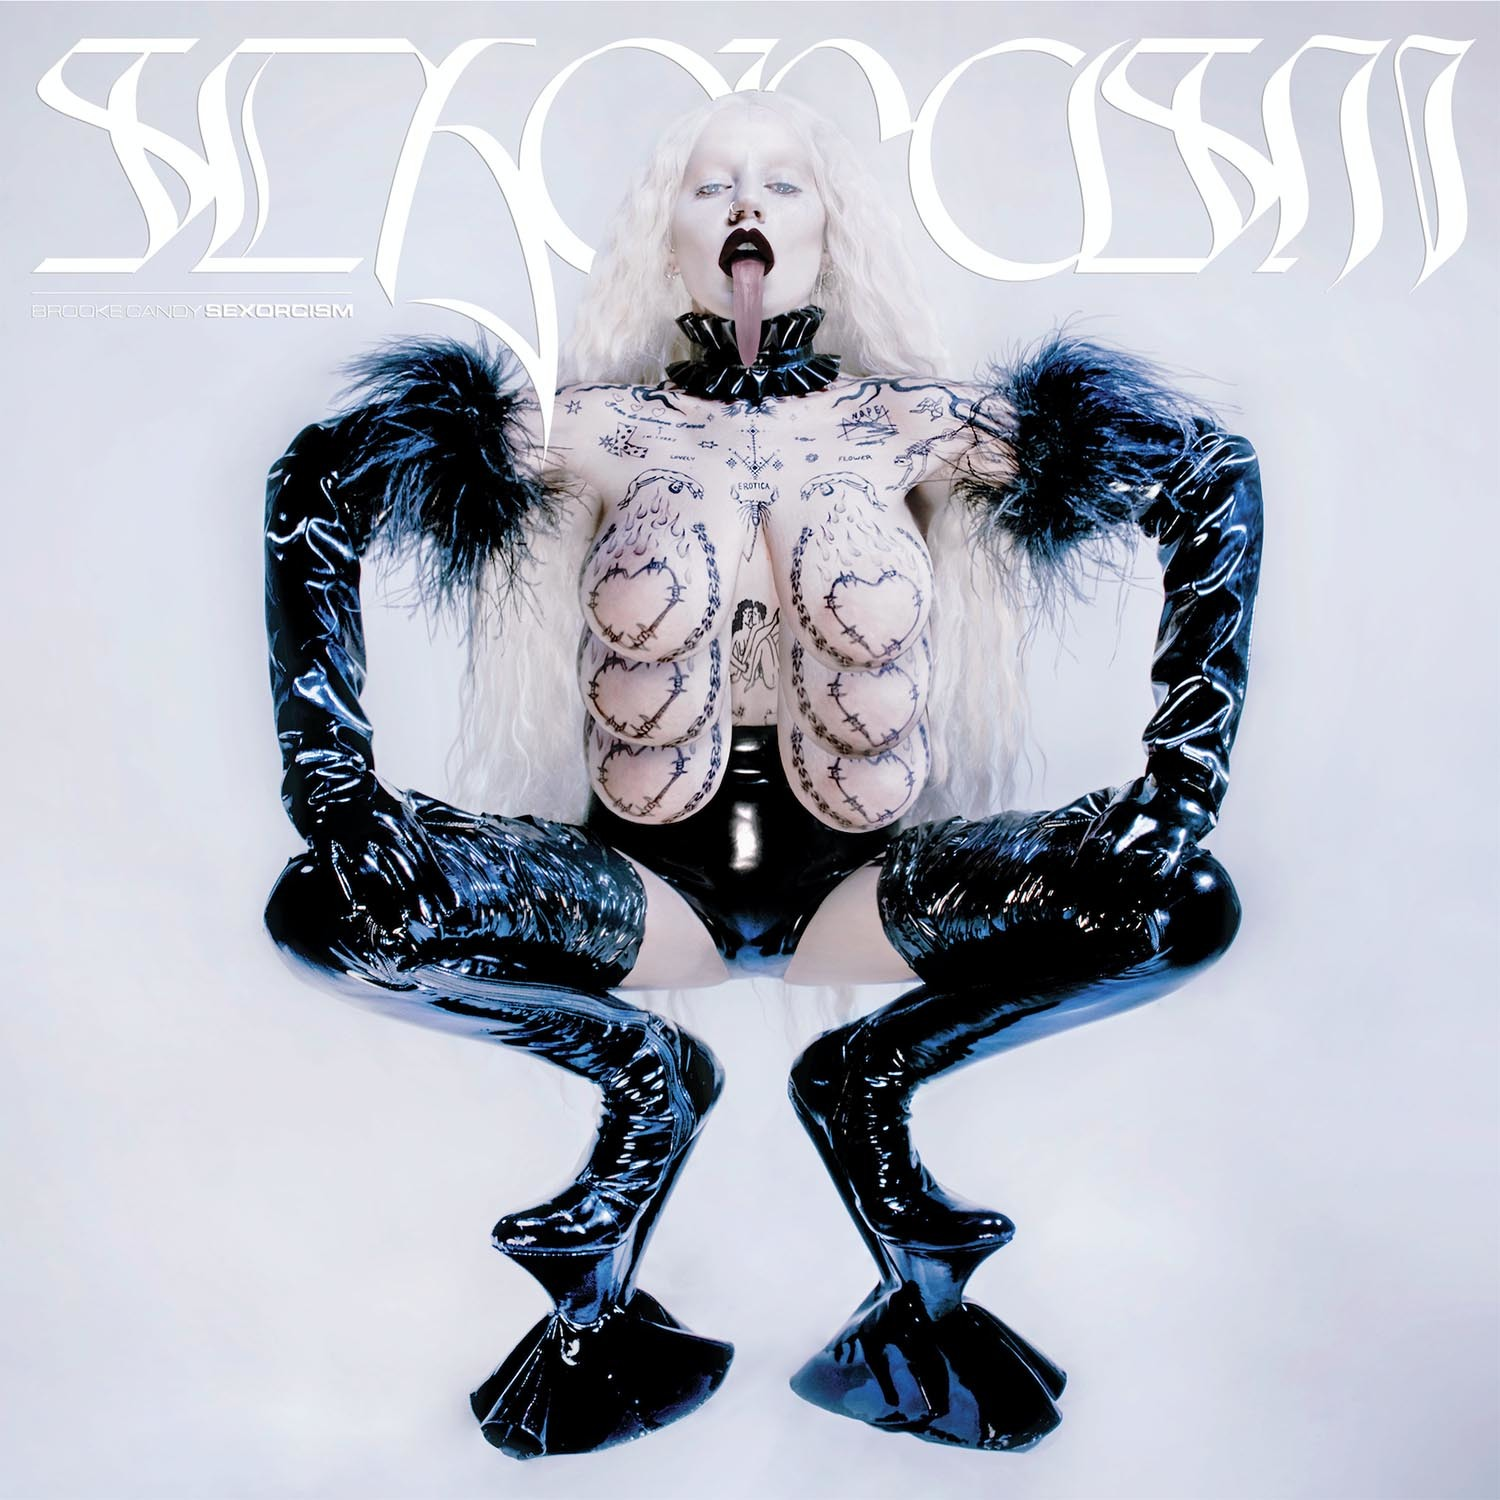 brooke candy debut sexorcism cover